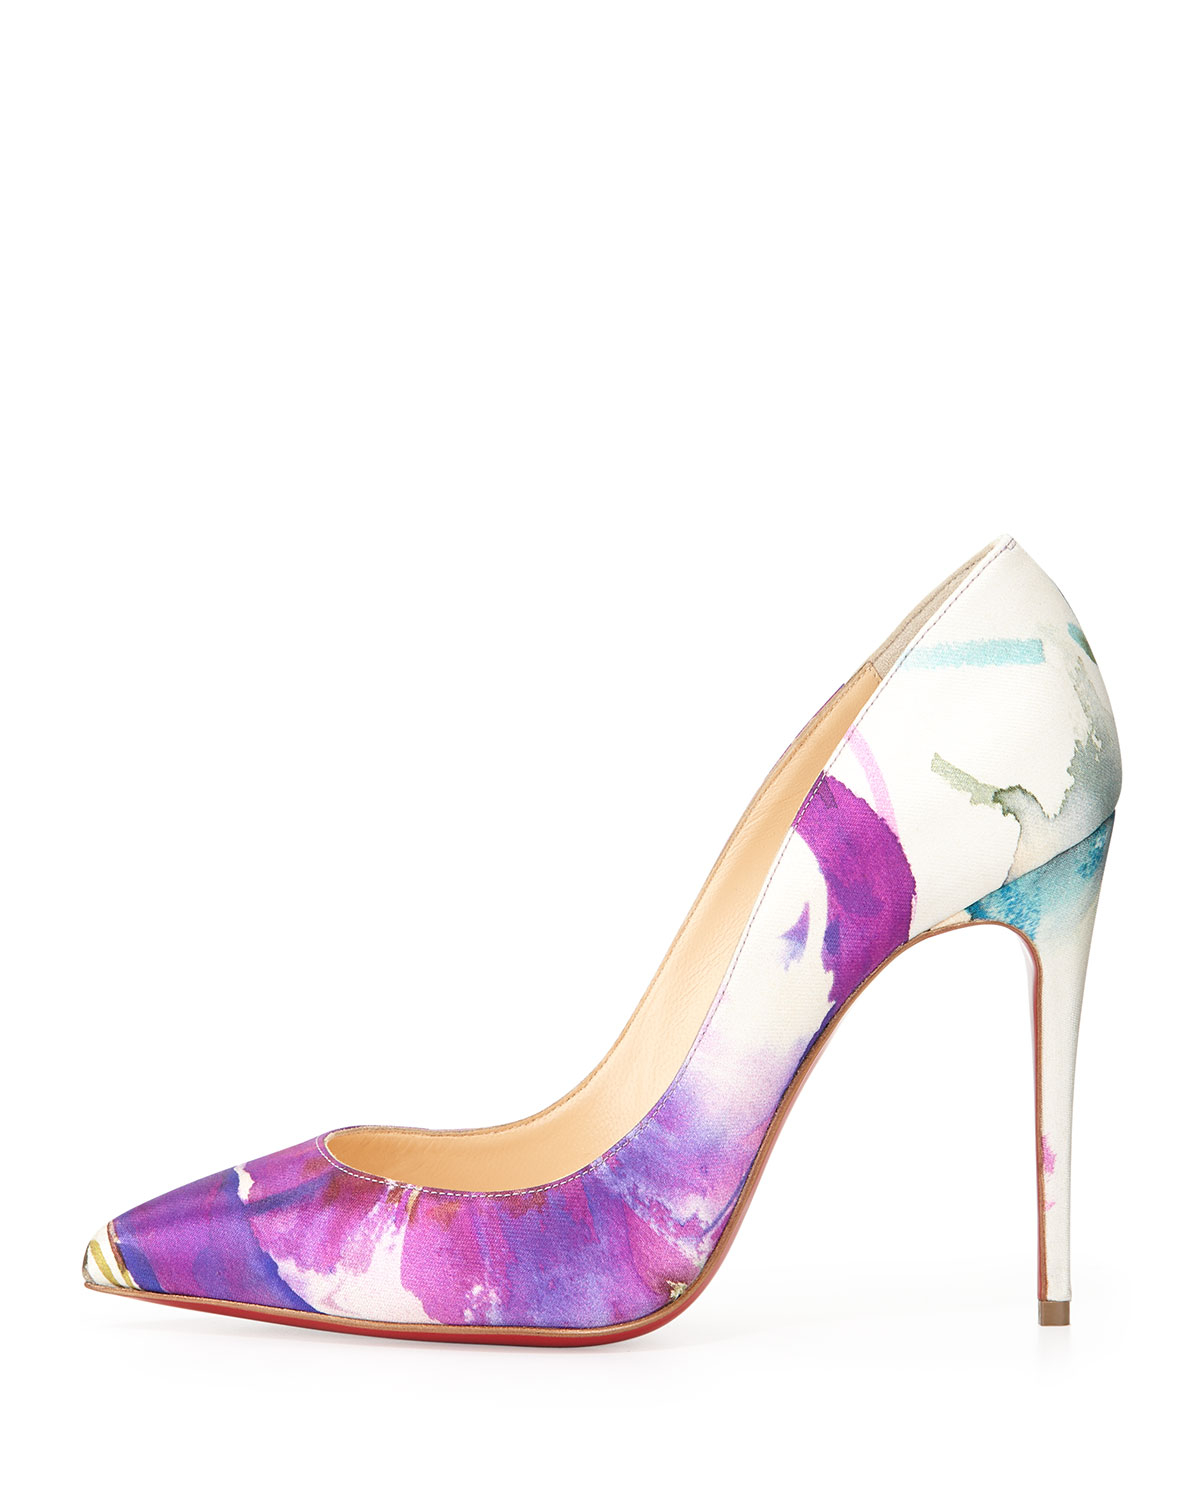 Shoeniverse The Ultimate Wedding Guest Shoe Featuring CHRISTIAN LOUBOUTIN Blue Pifalle Follies